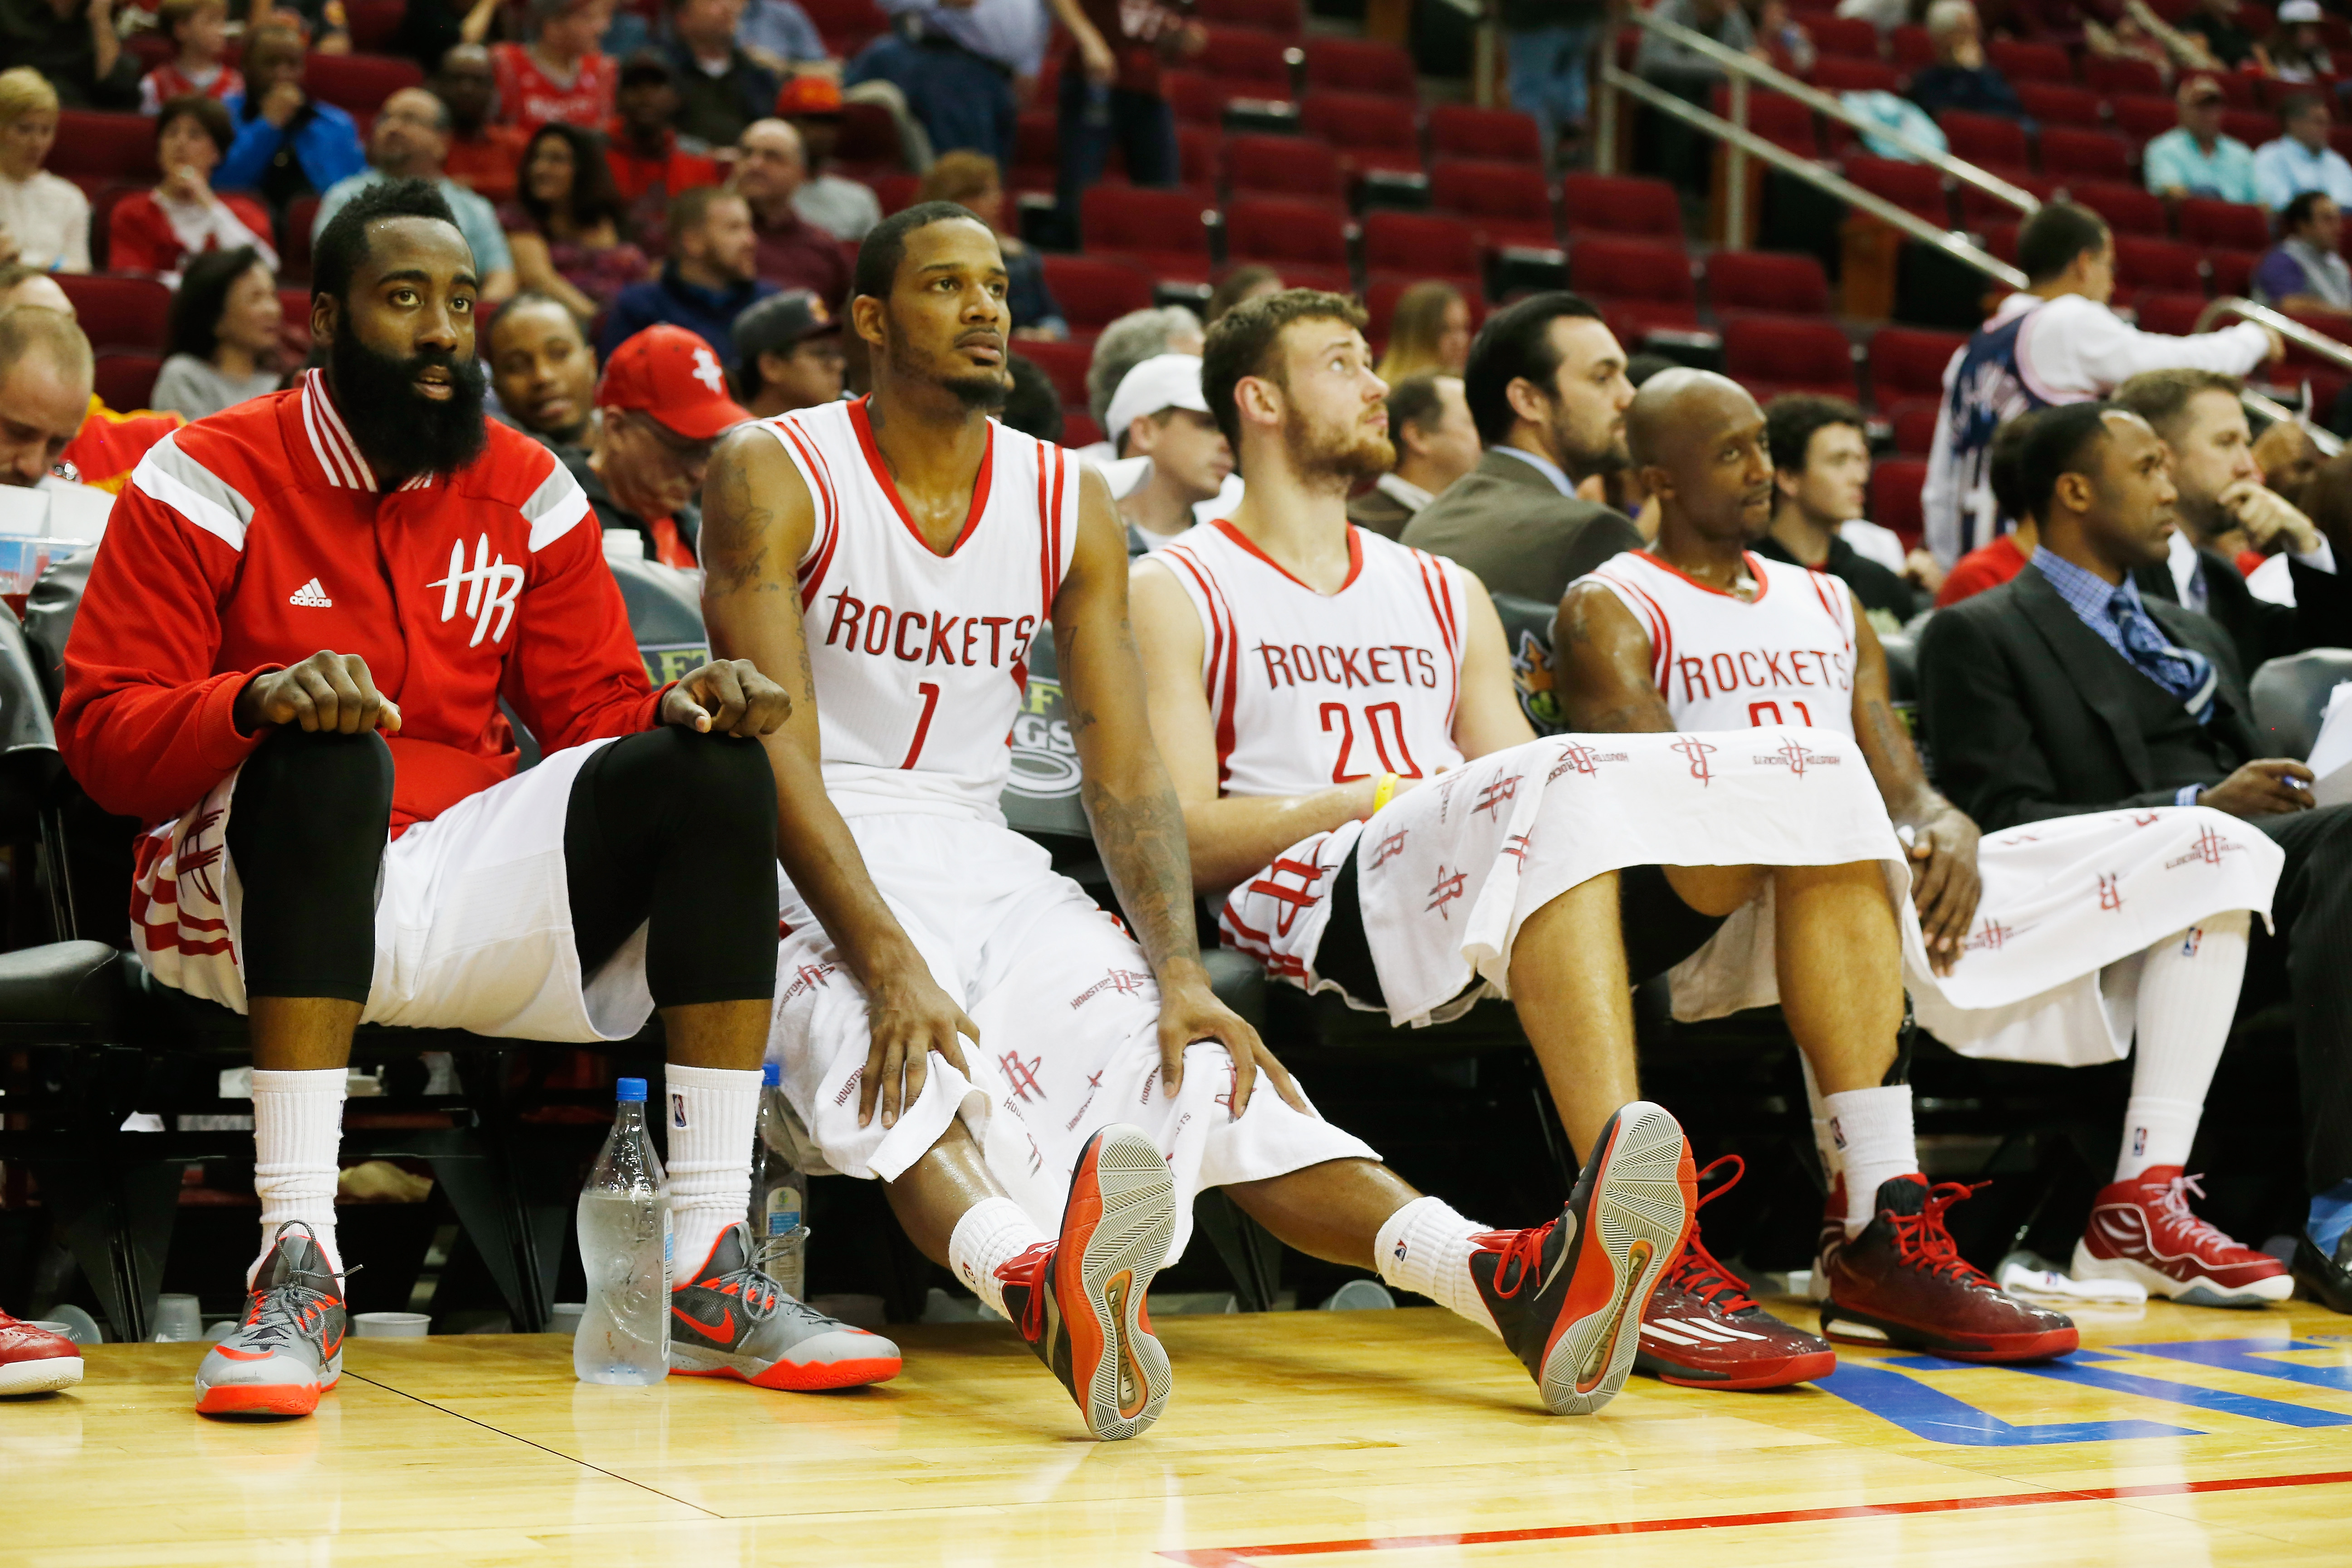 This Houston Rockets lineup is staking their claim as the best team in the NBA.